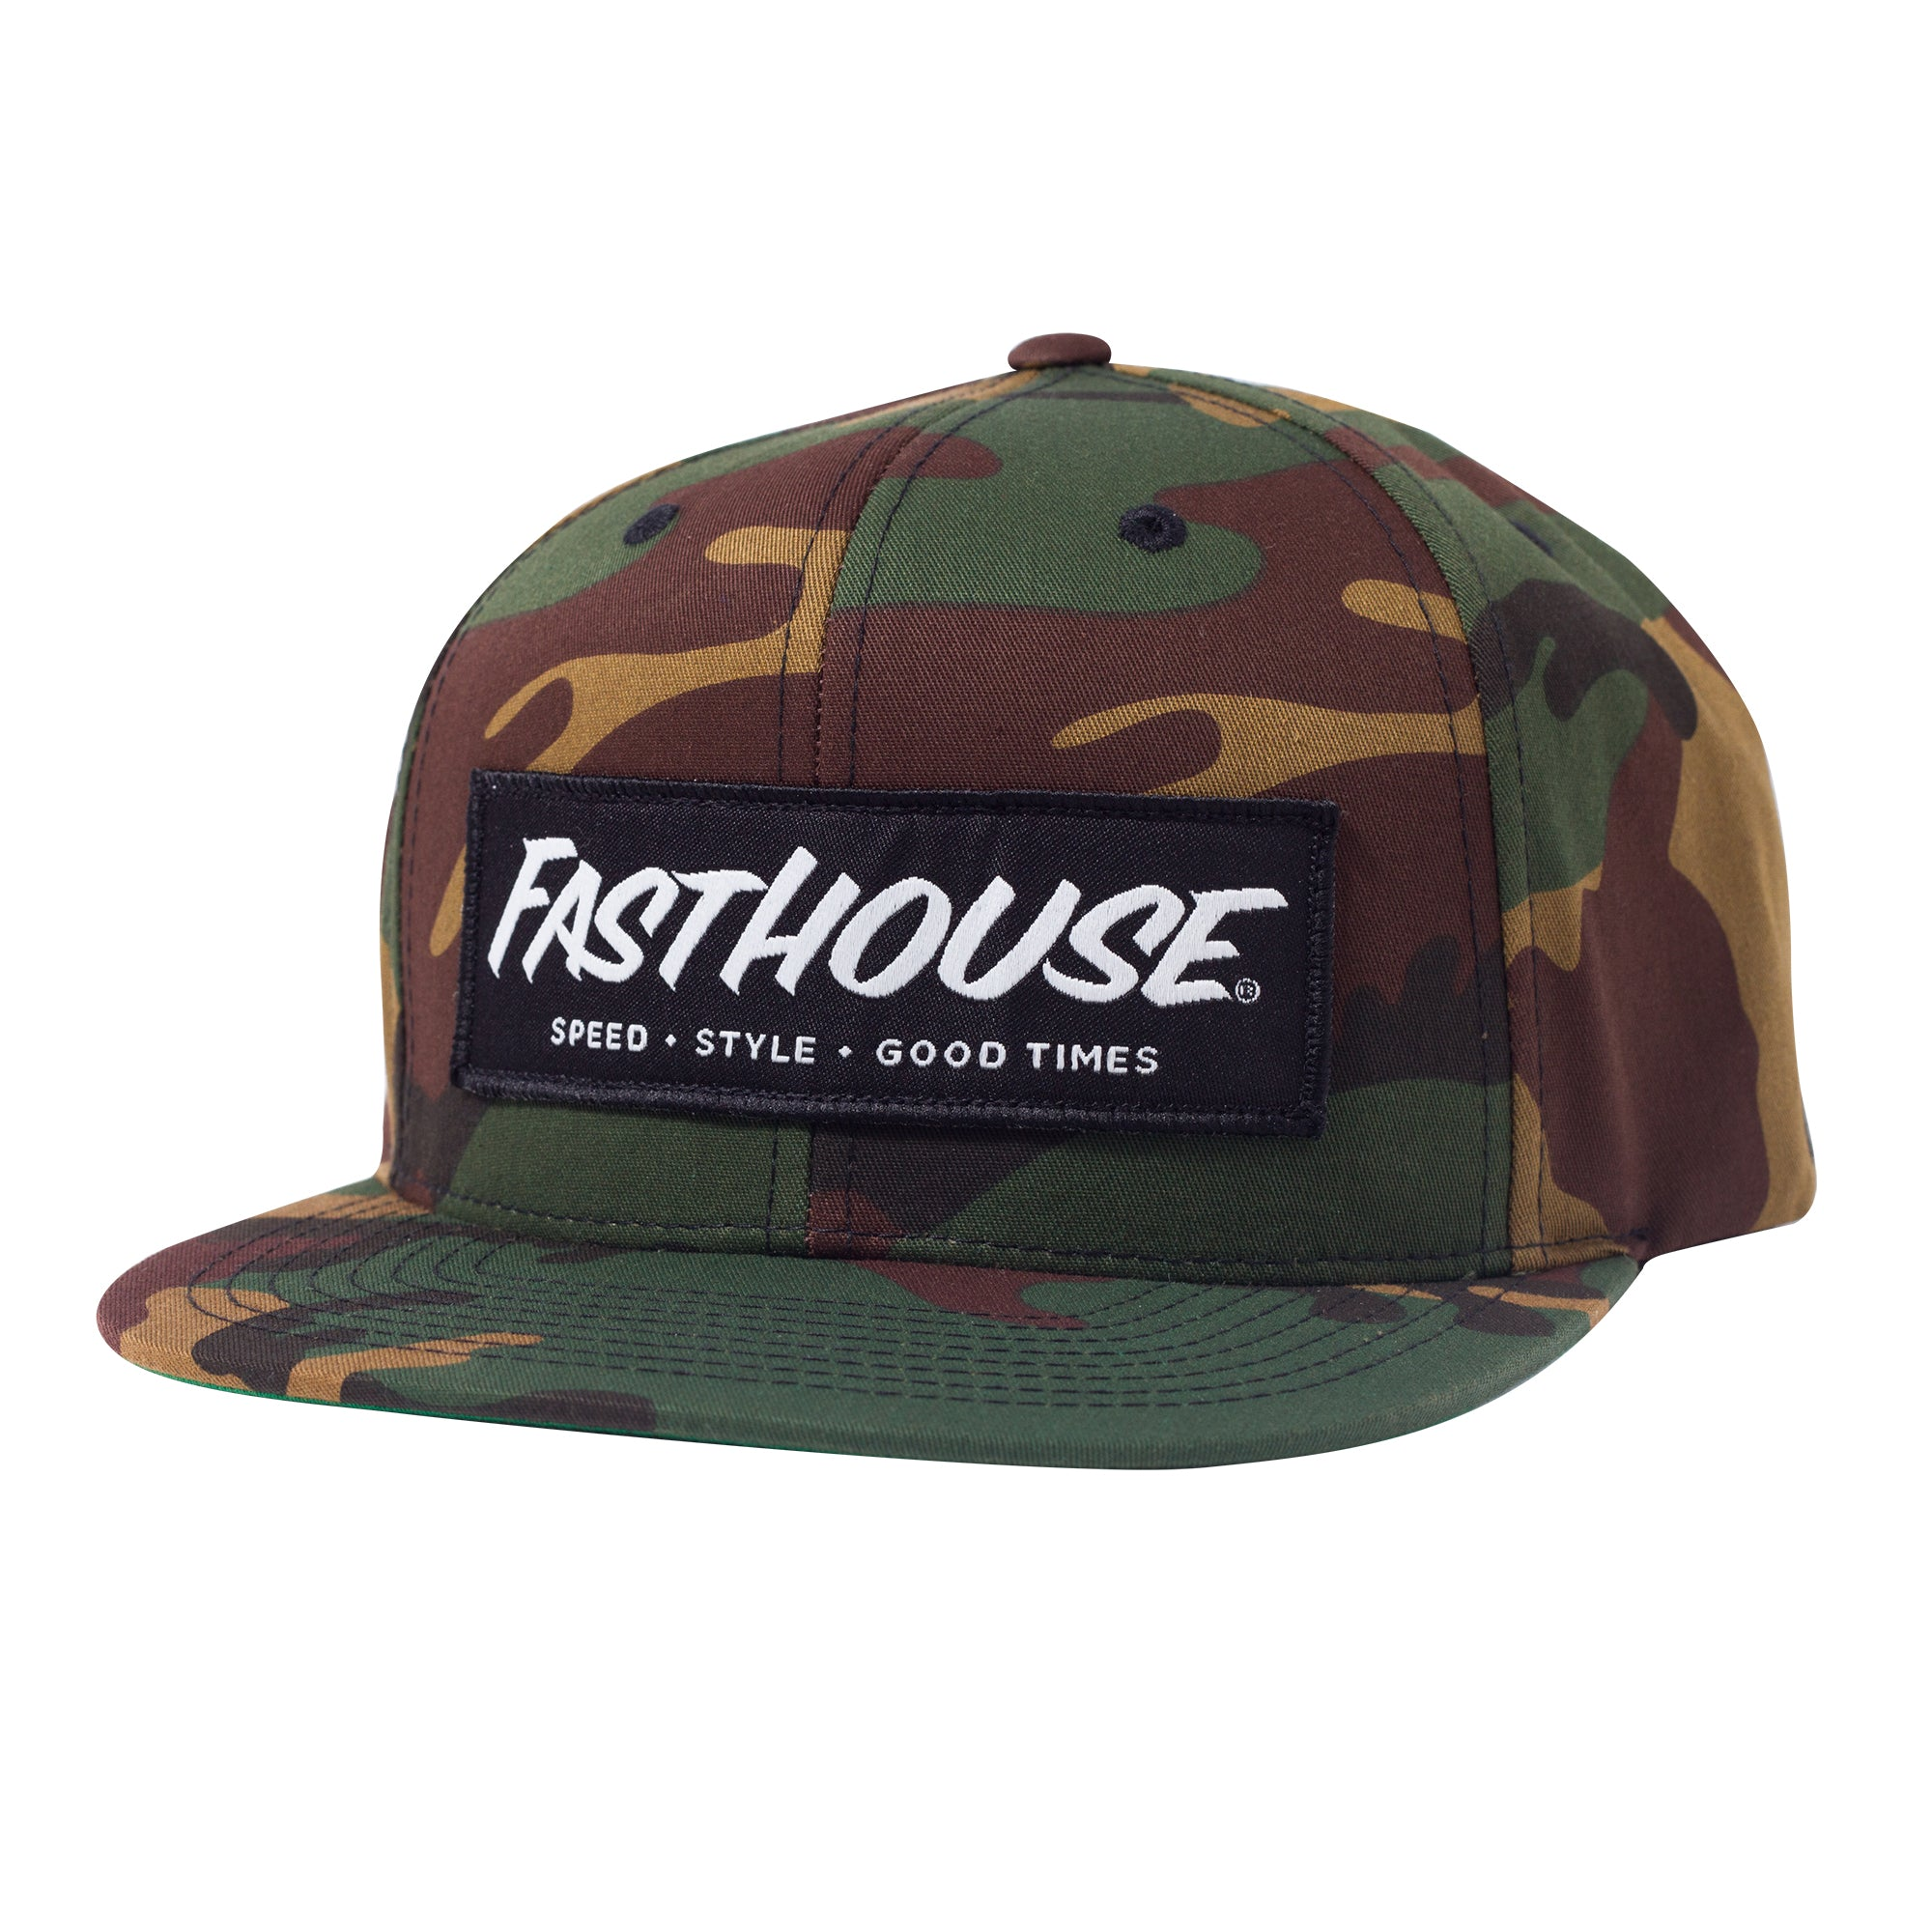 Fasthouse - Speed Style Good Times Hat - Camo